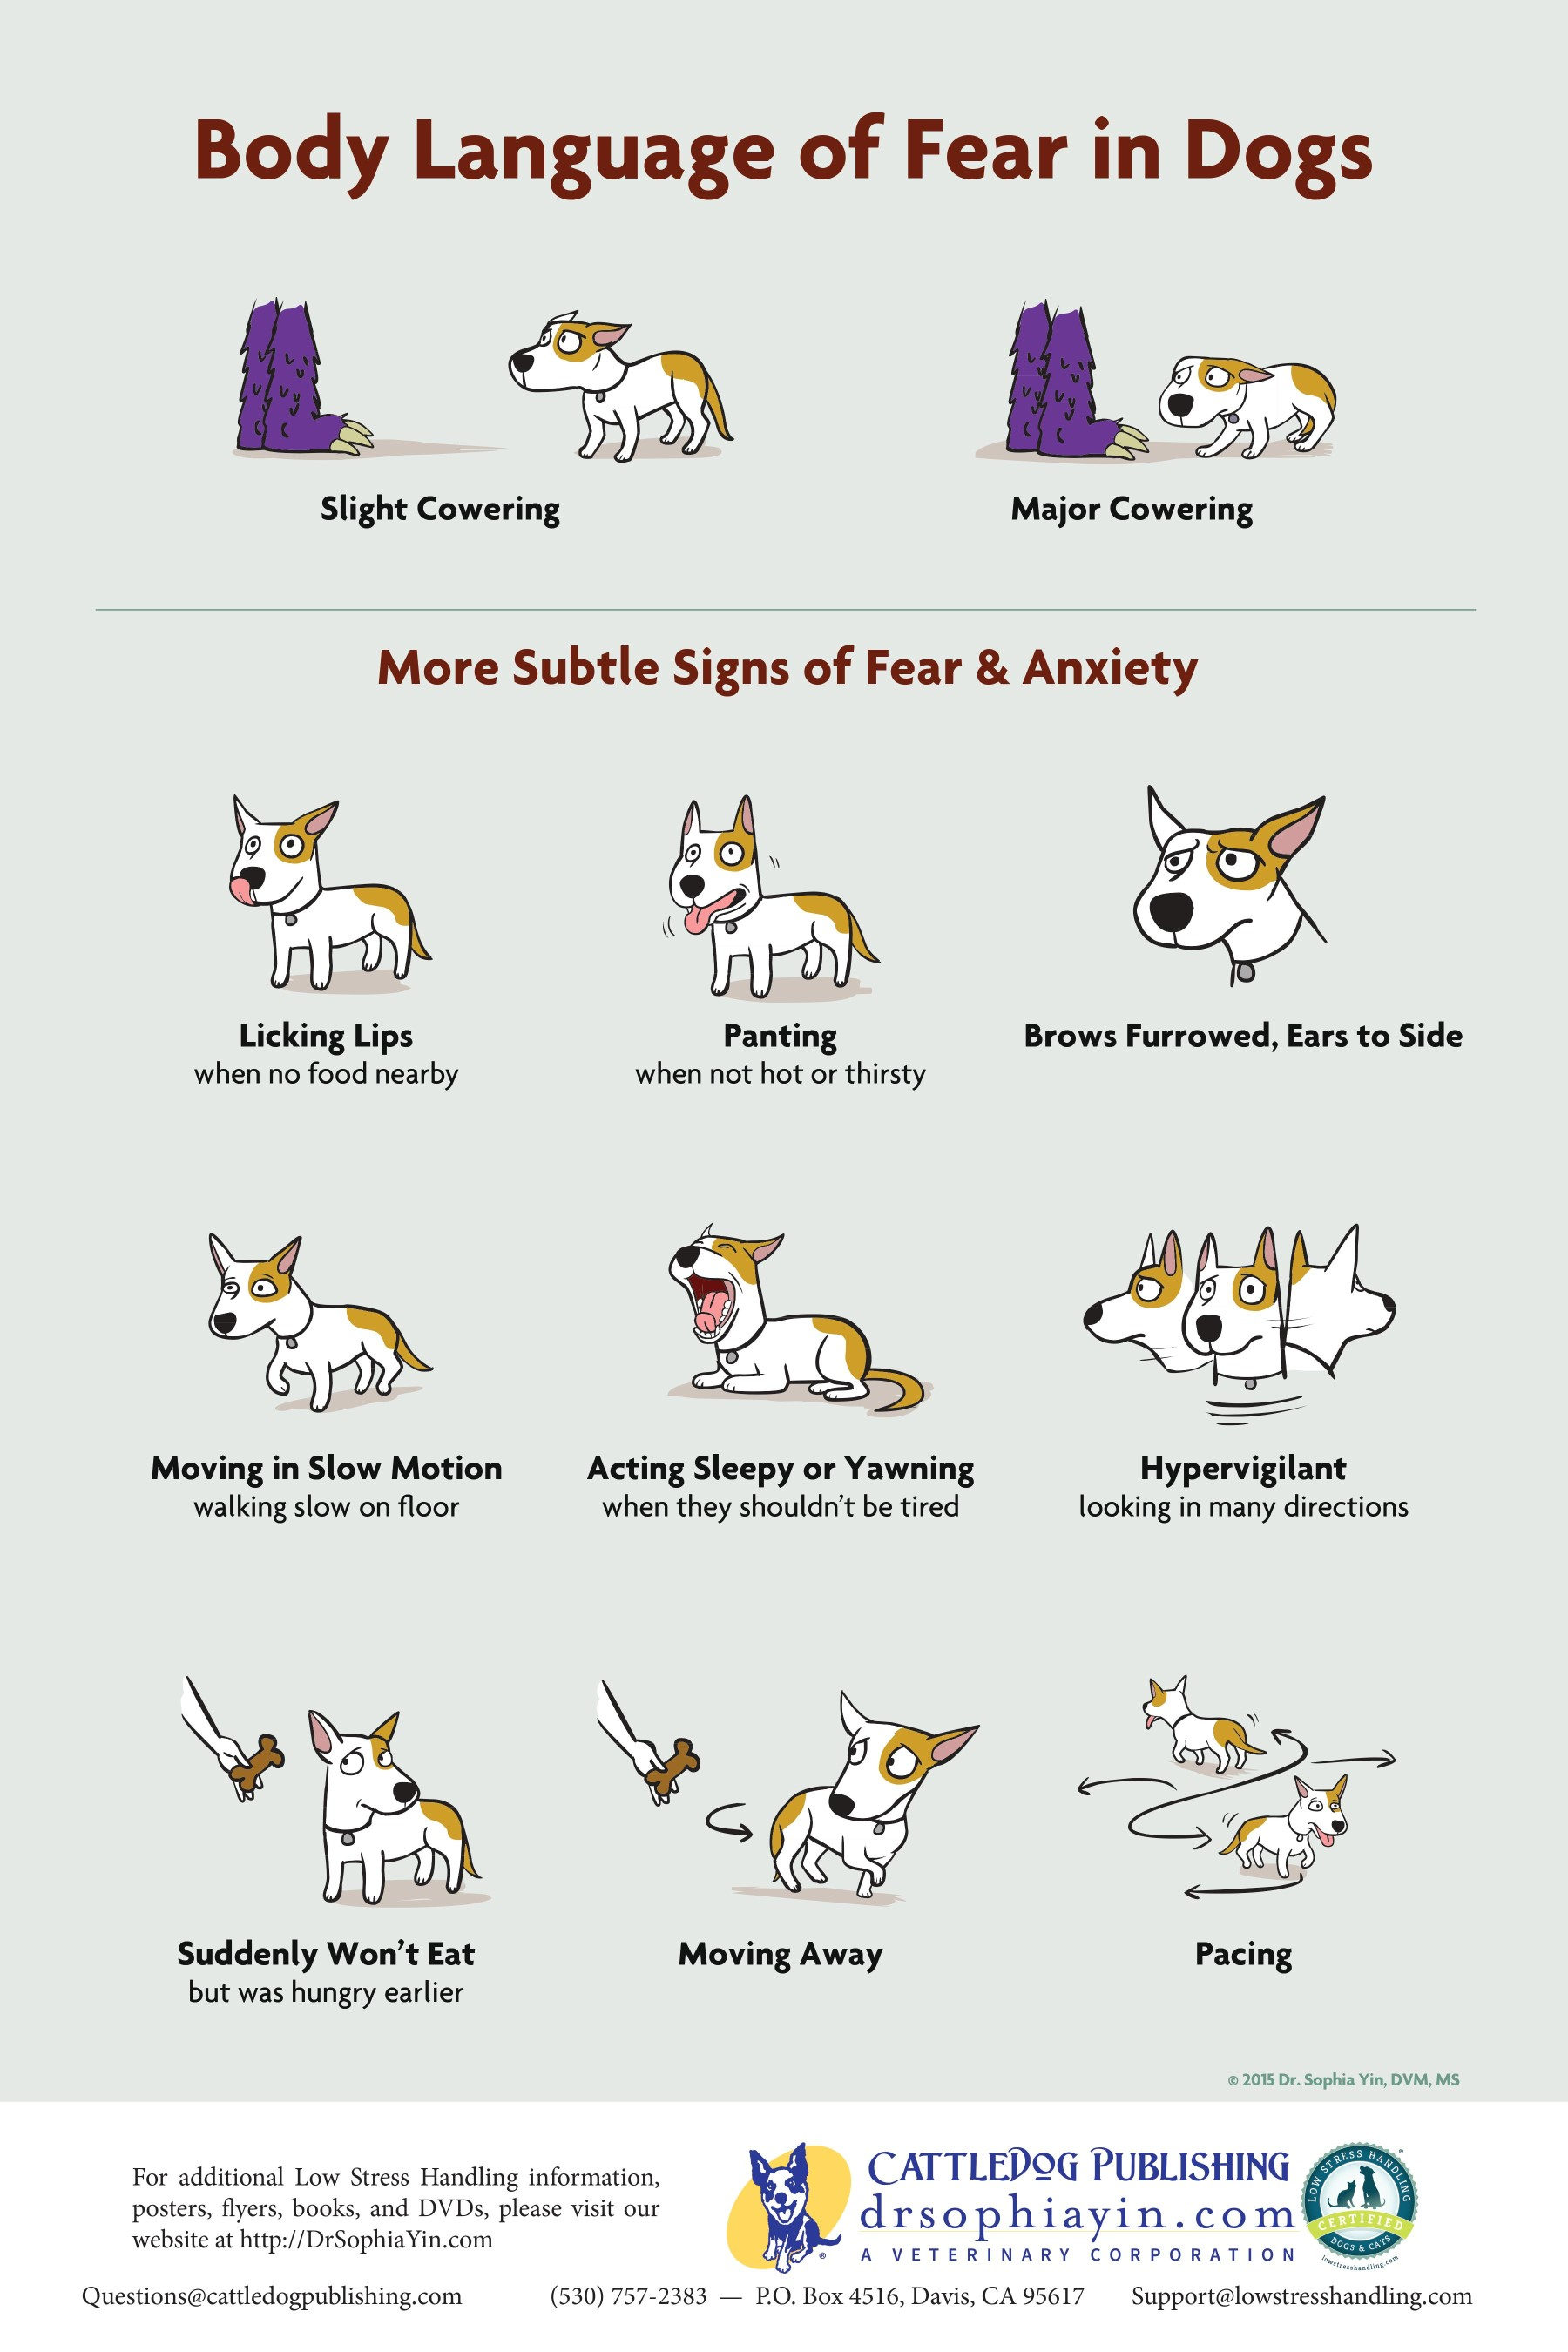 Body Language of Fear in Dogs poster by Dr Sophia Yin